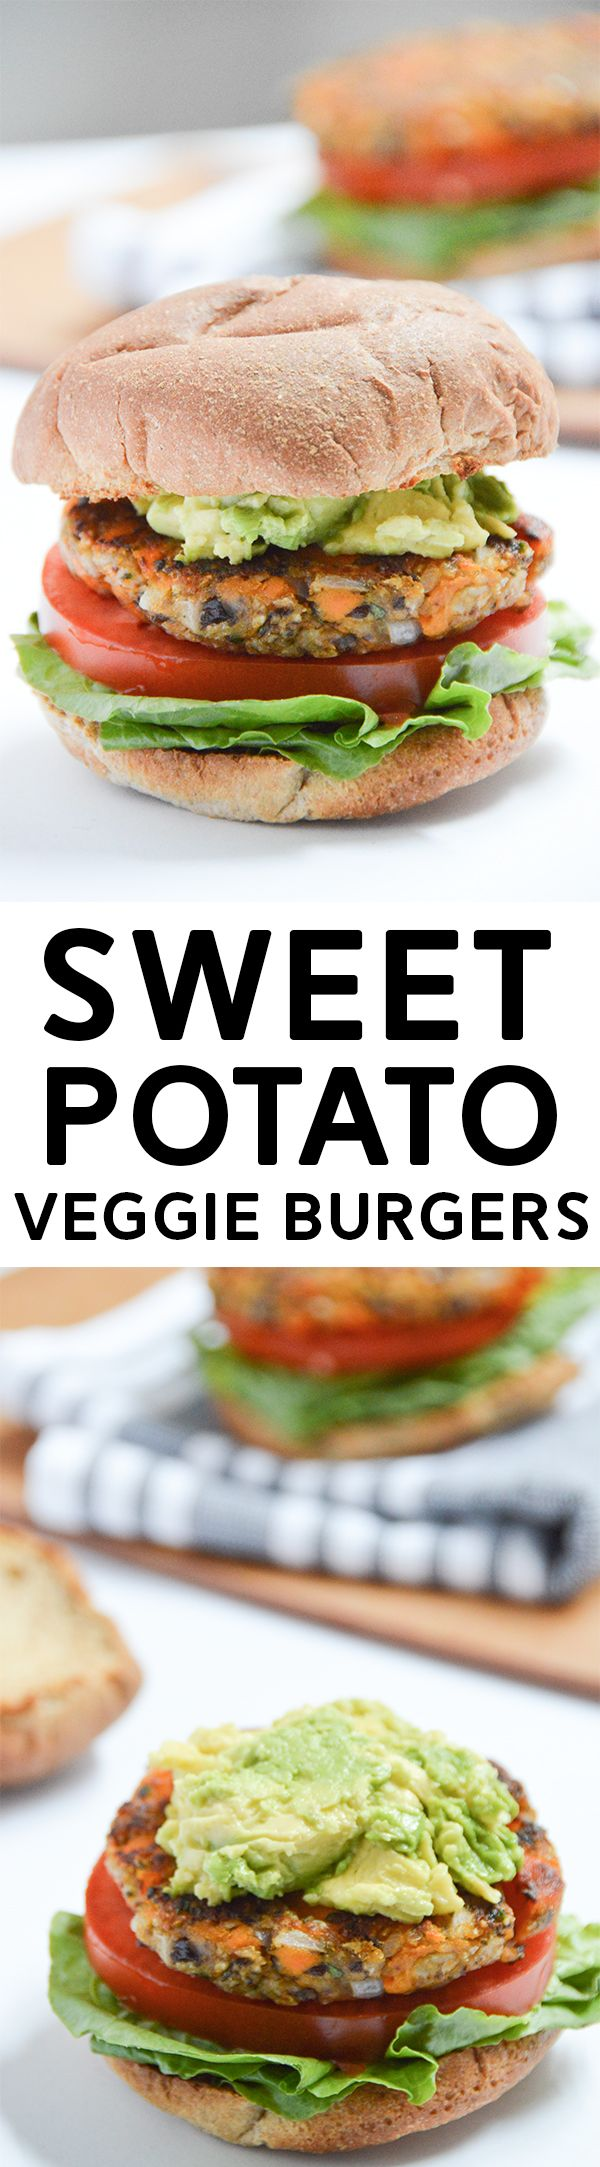 Sweet Potato Veggie Burgers - vegan and gluten-free